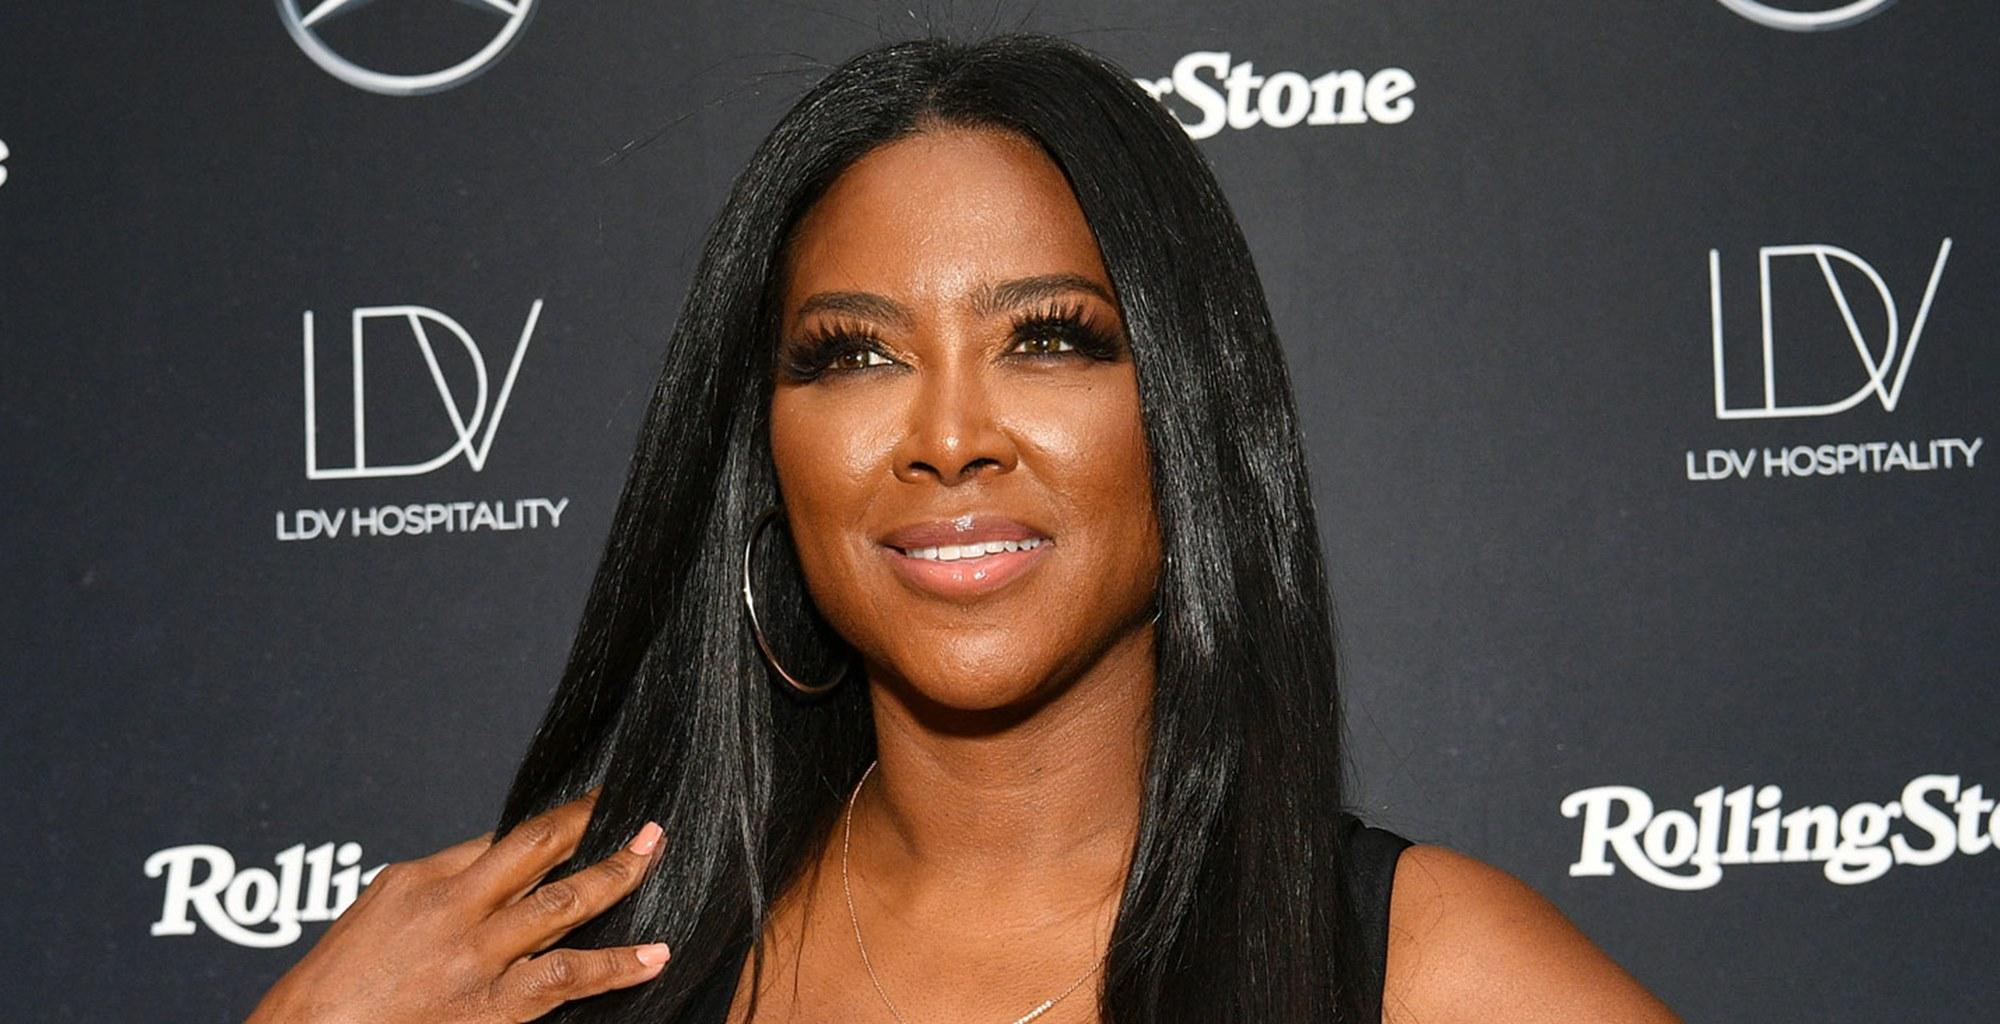 Kenya Moore Shares Video Of A Very Special First For Estranged Husband Marc Daly And Their Daughter, Brooklyn -- Some Fans Are Angry